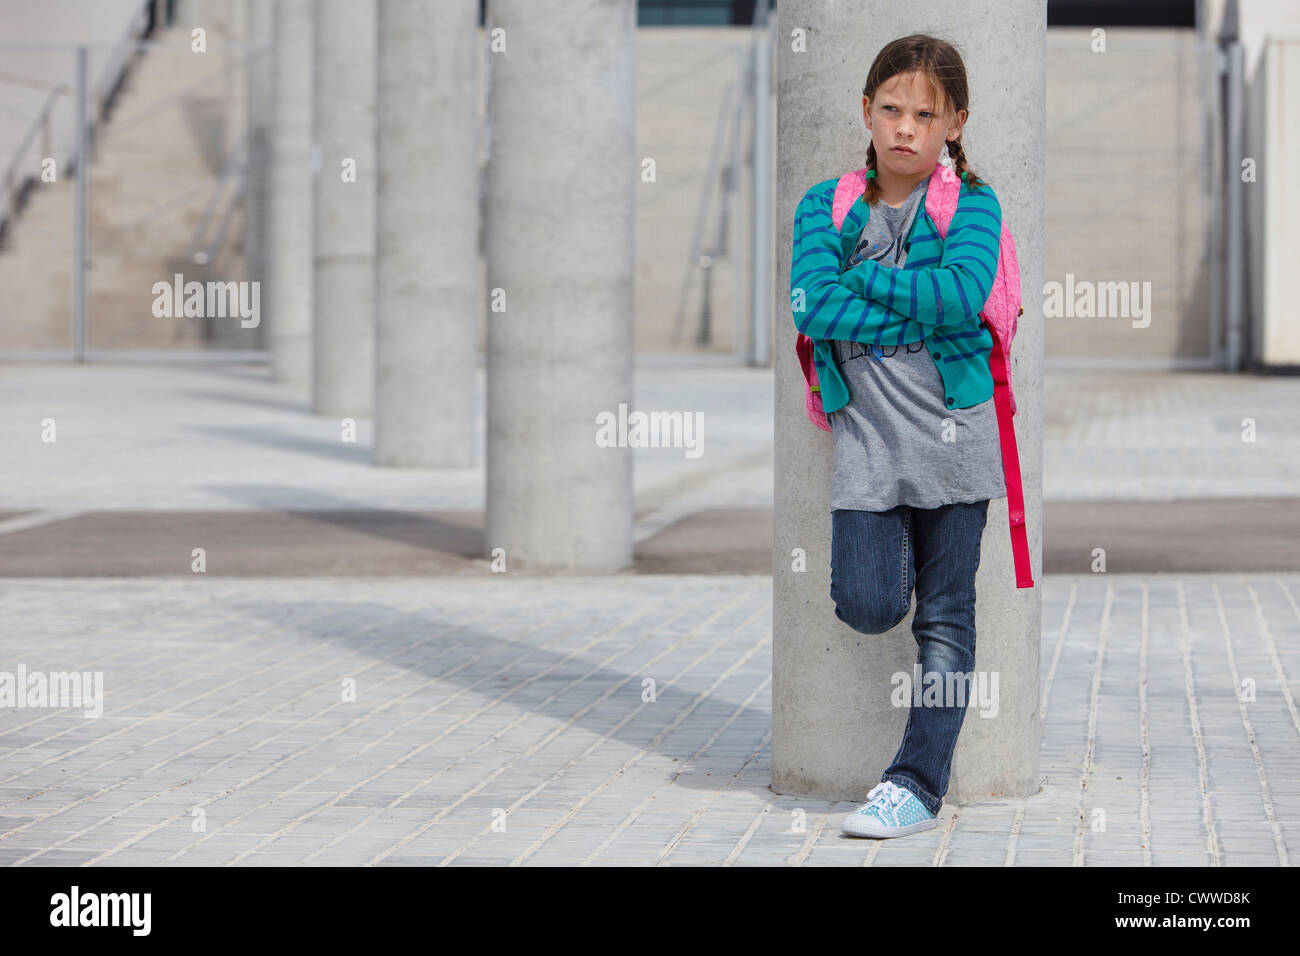 Frowning girl leaning against column - Stock Image